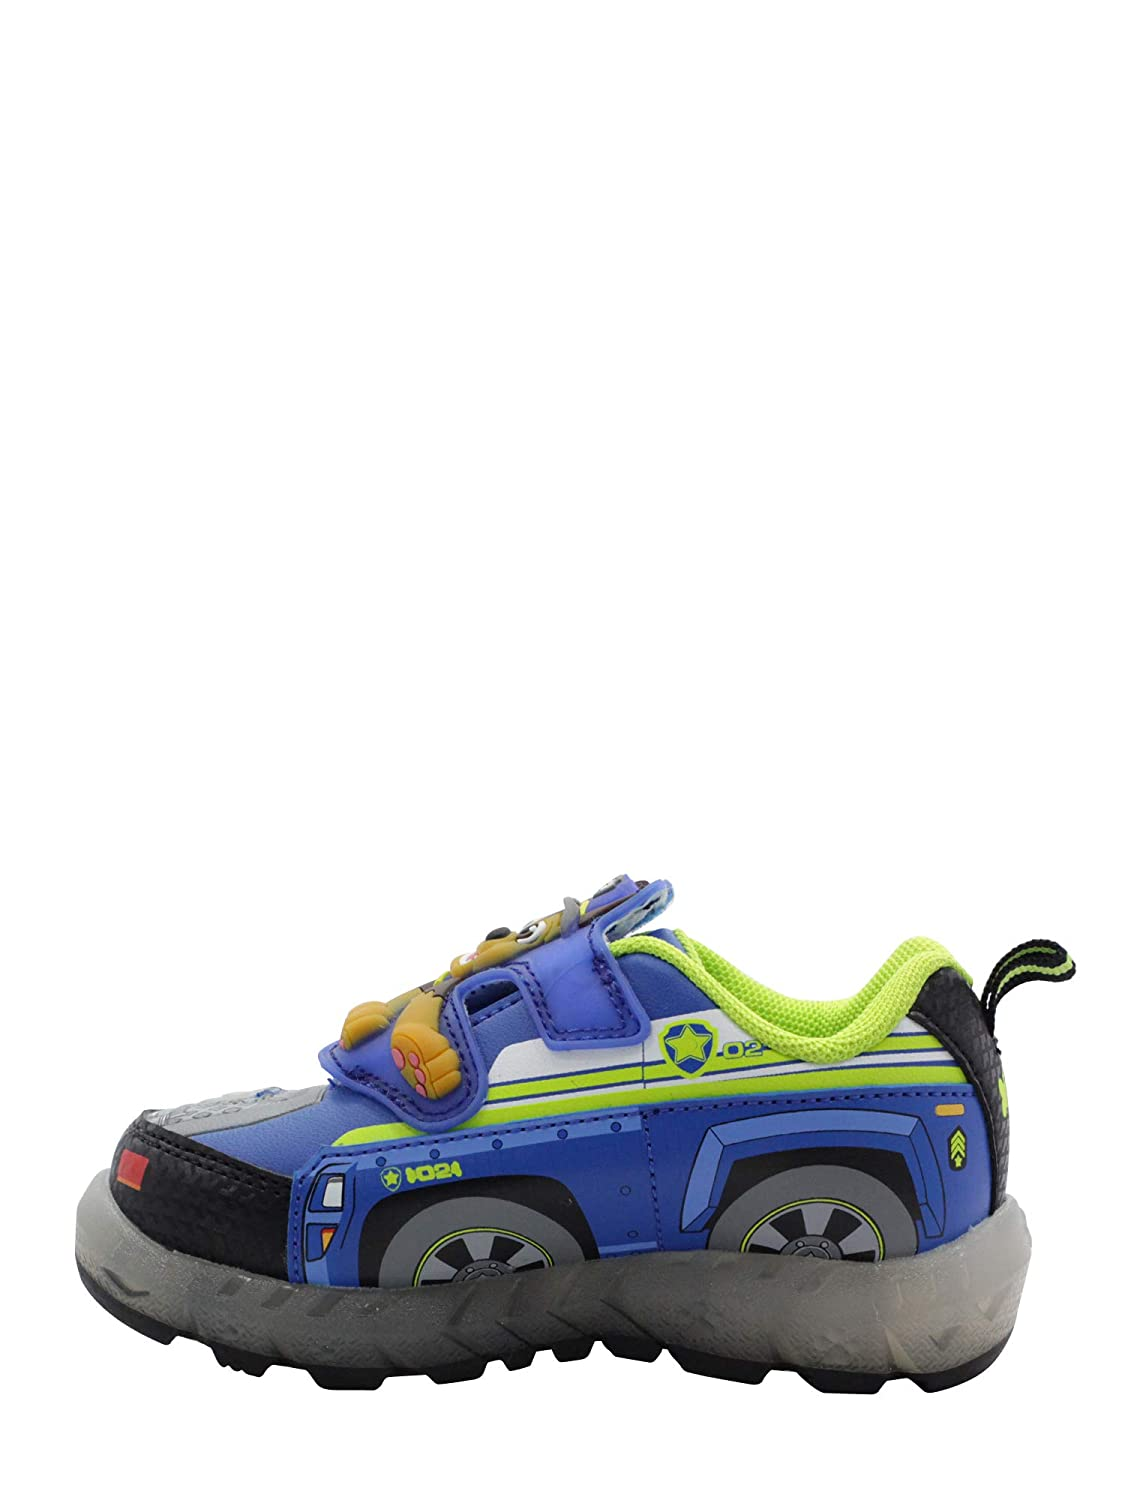 Paw Patrol Toddler Boys Light-Up Athletic Shoe Blue 9